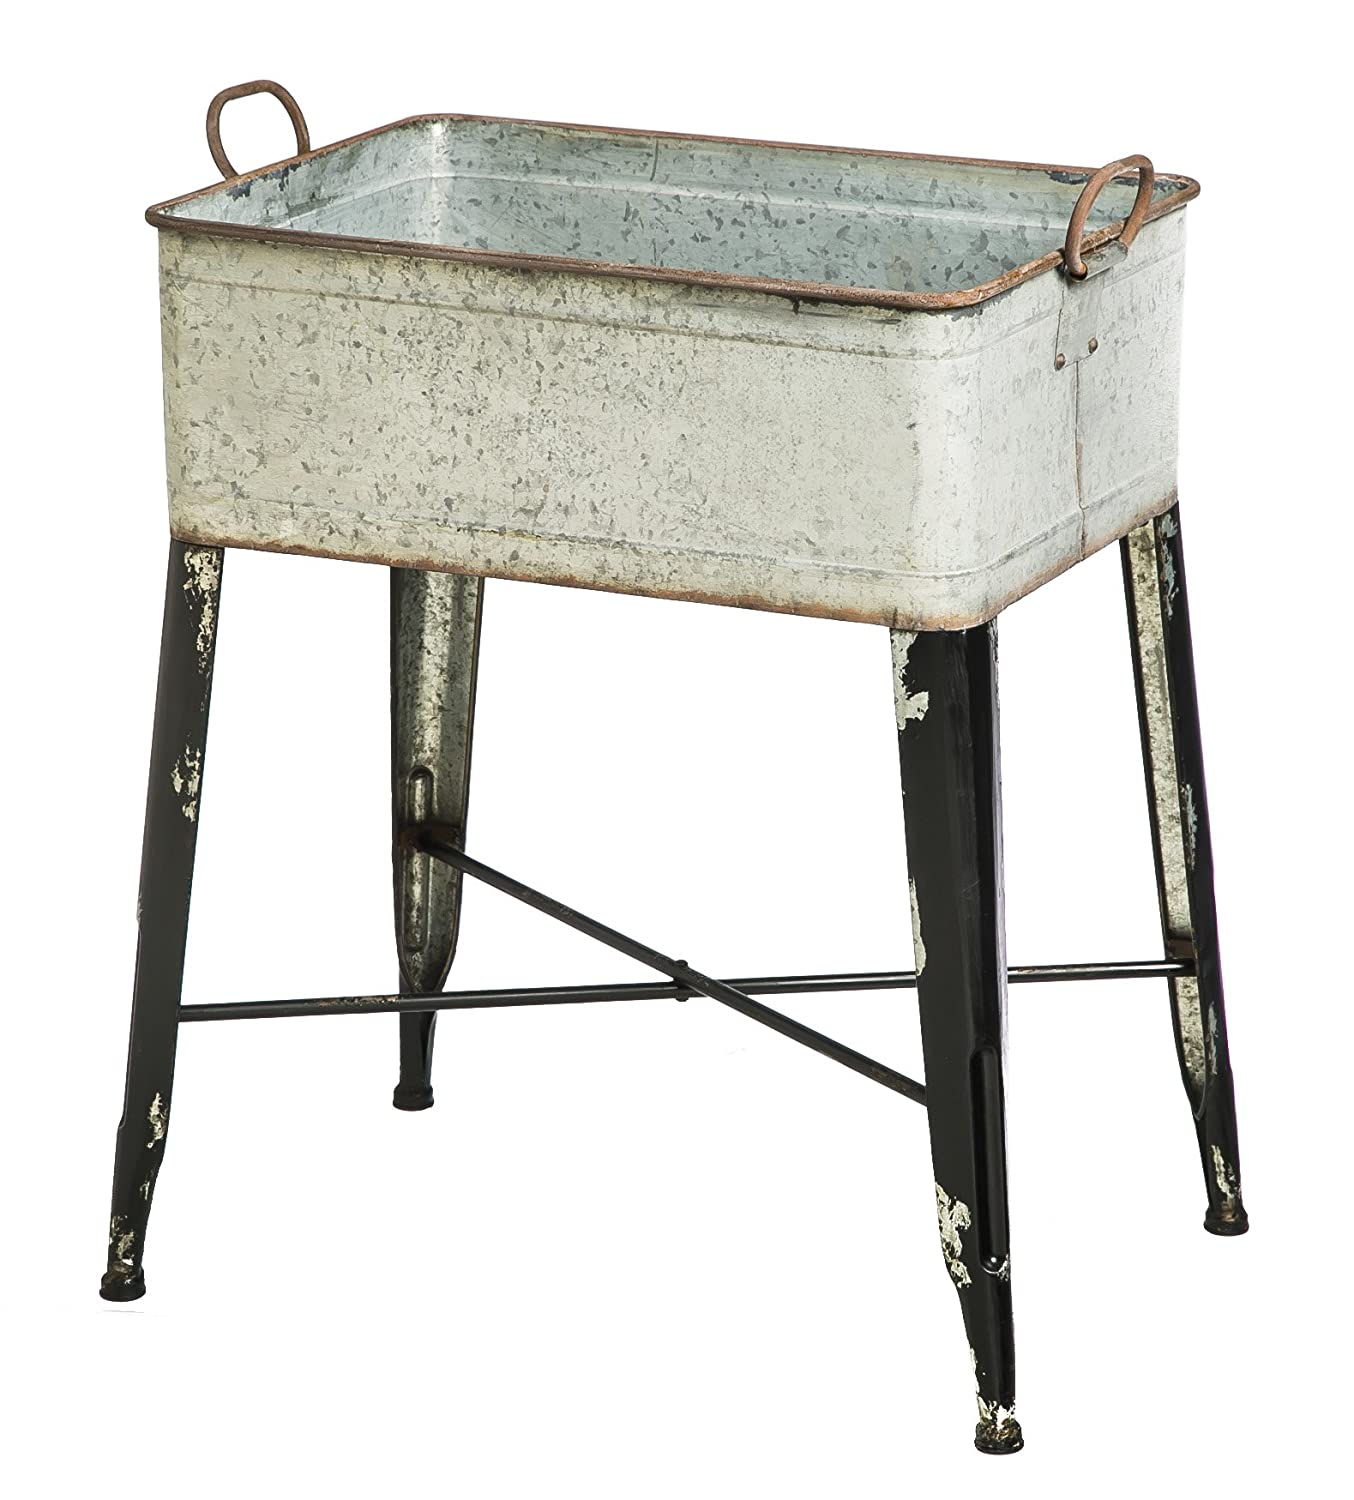 popular galvanized metal ideas of tub wash tubswheeled marvelous double and wheeling vintage stand with furniture chairs fixed pict